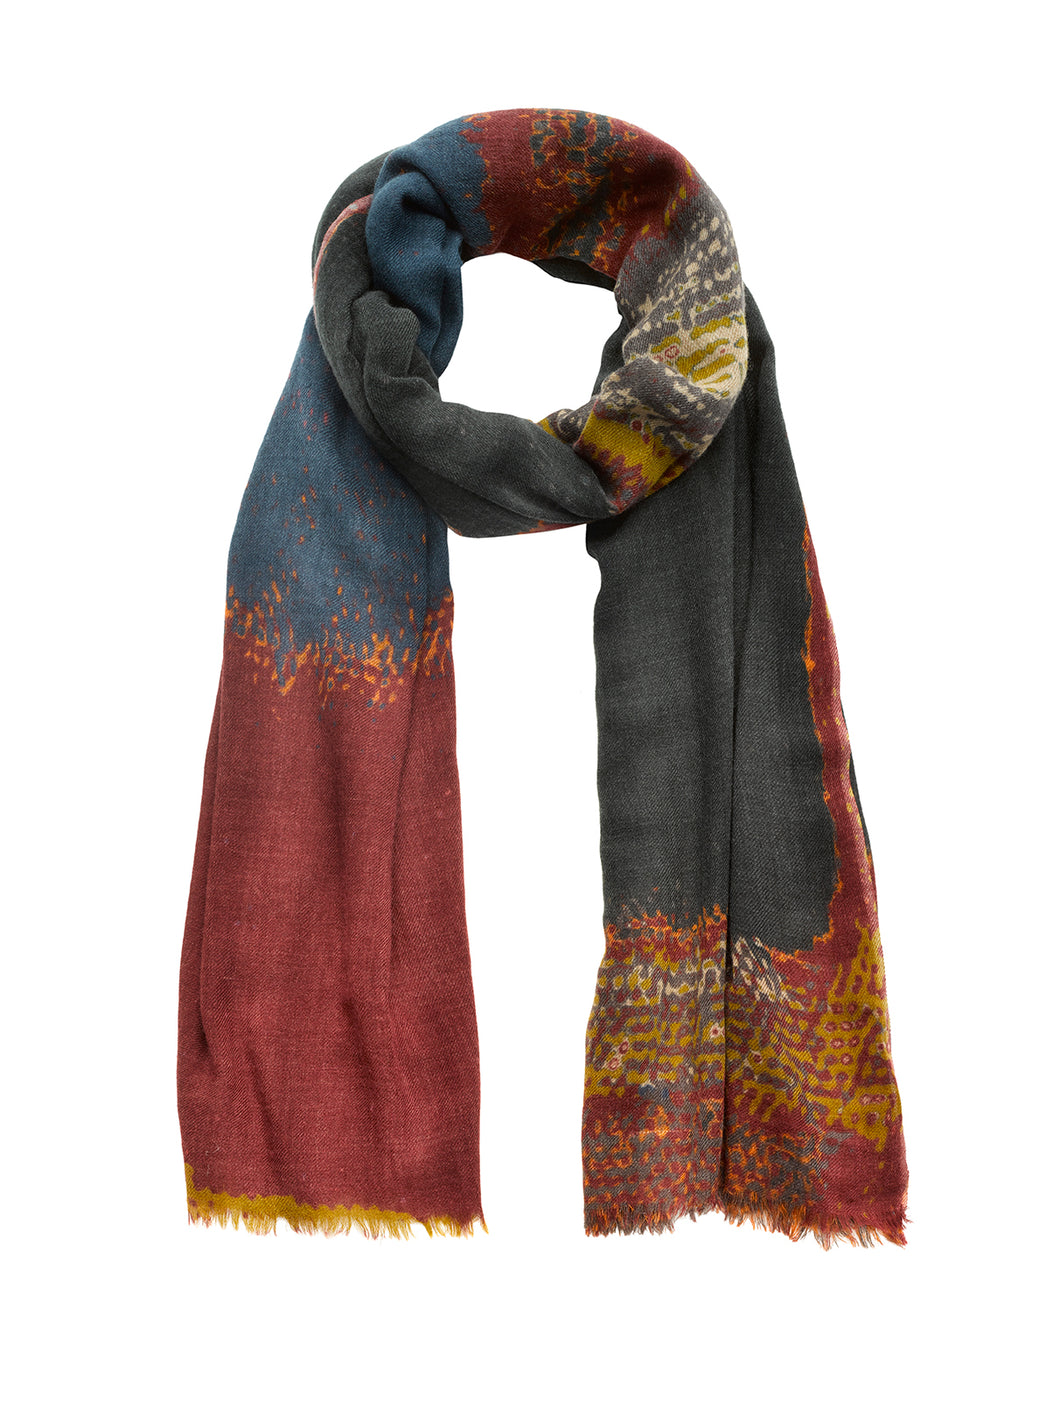 Rothko Patterned Scarf